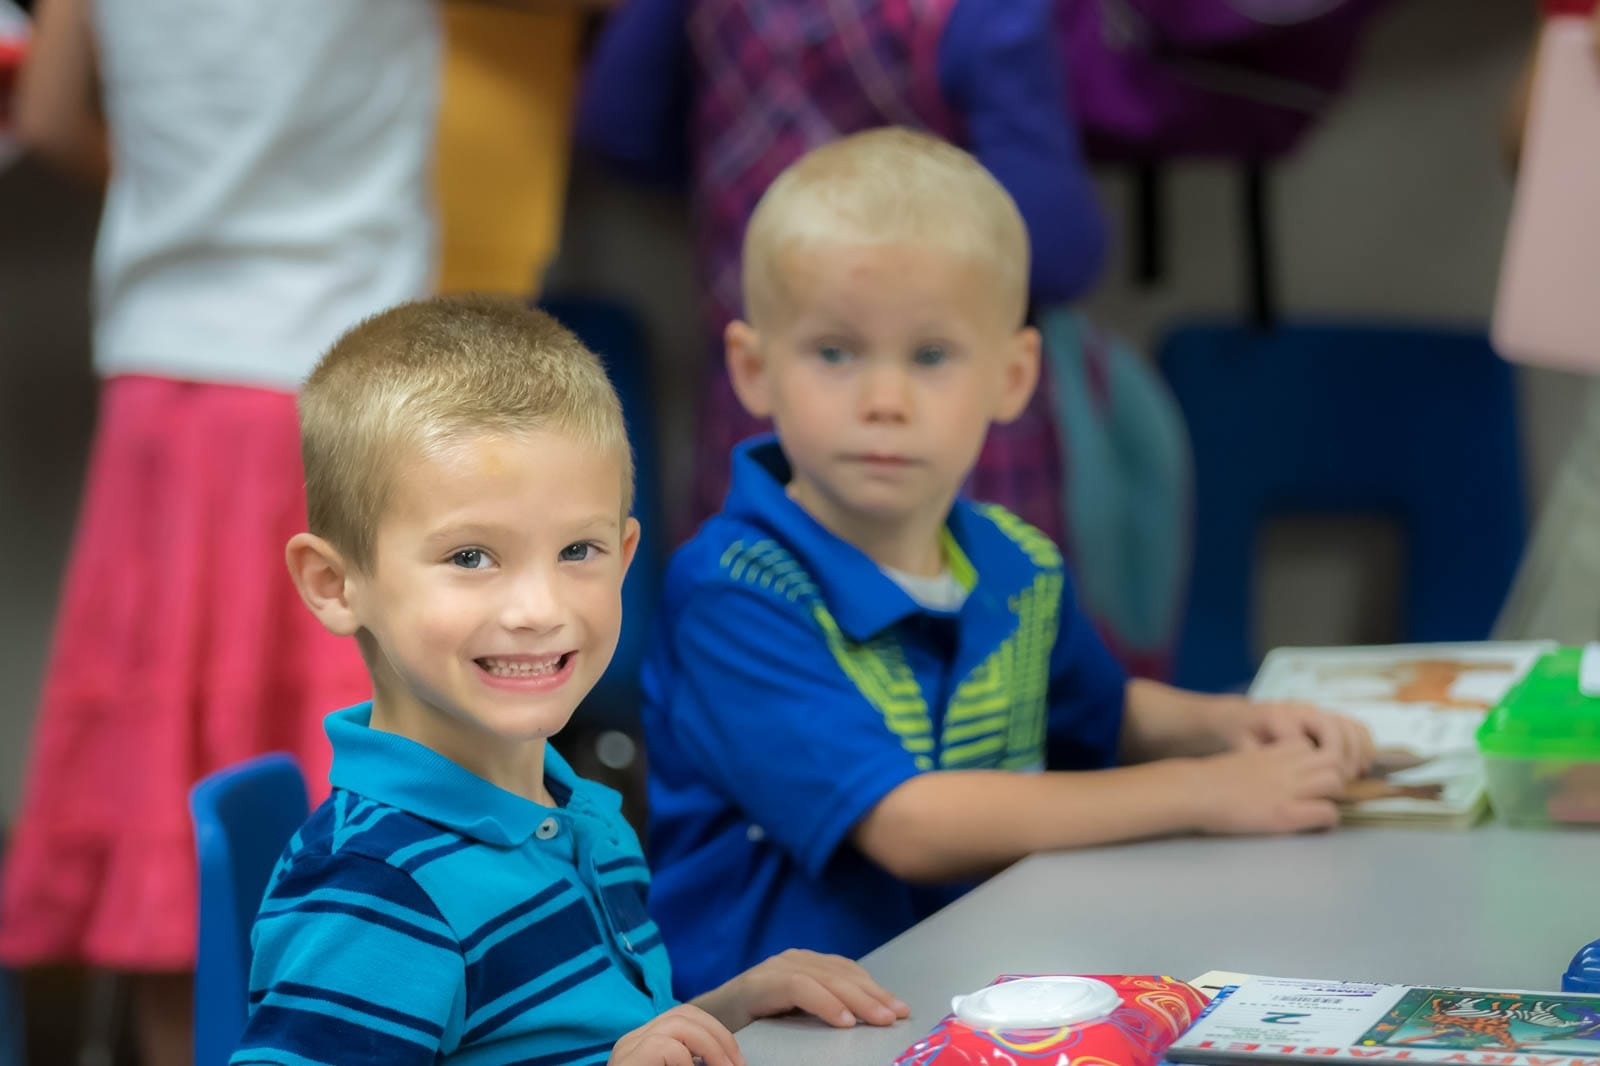 Fairhaven Baptist Academy First Day of School 2015 (8 of 10)